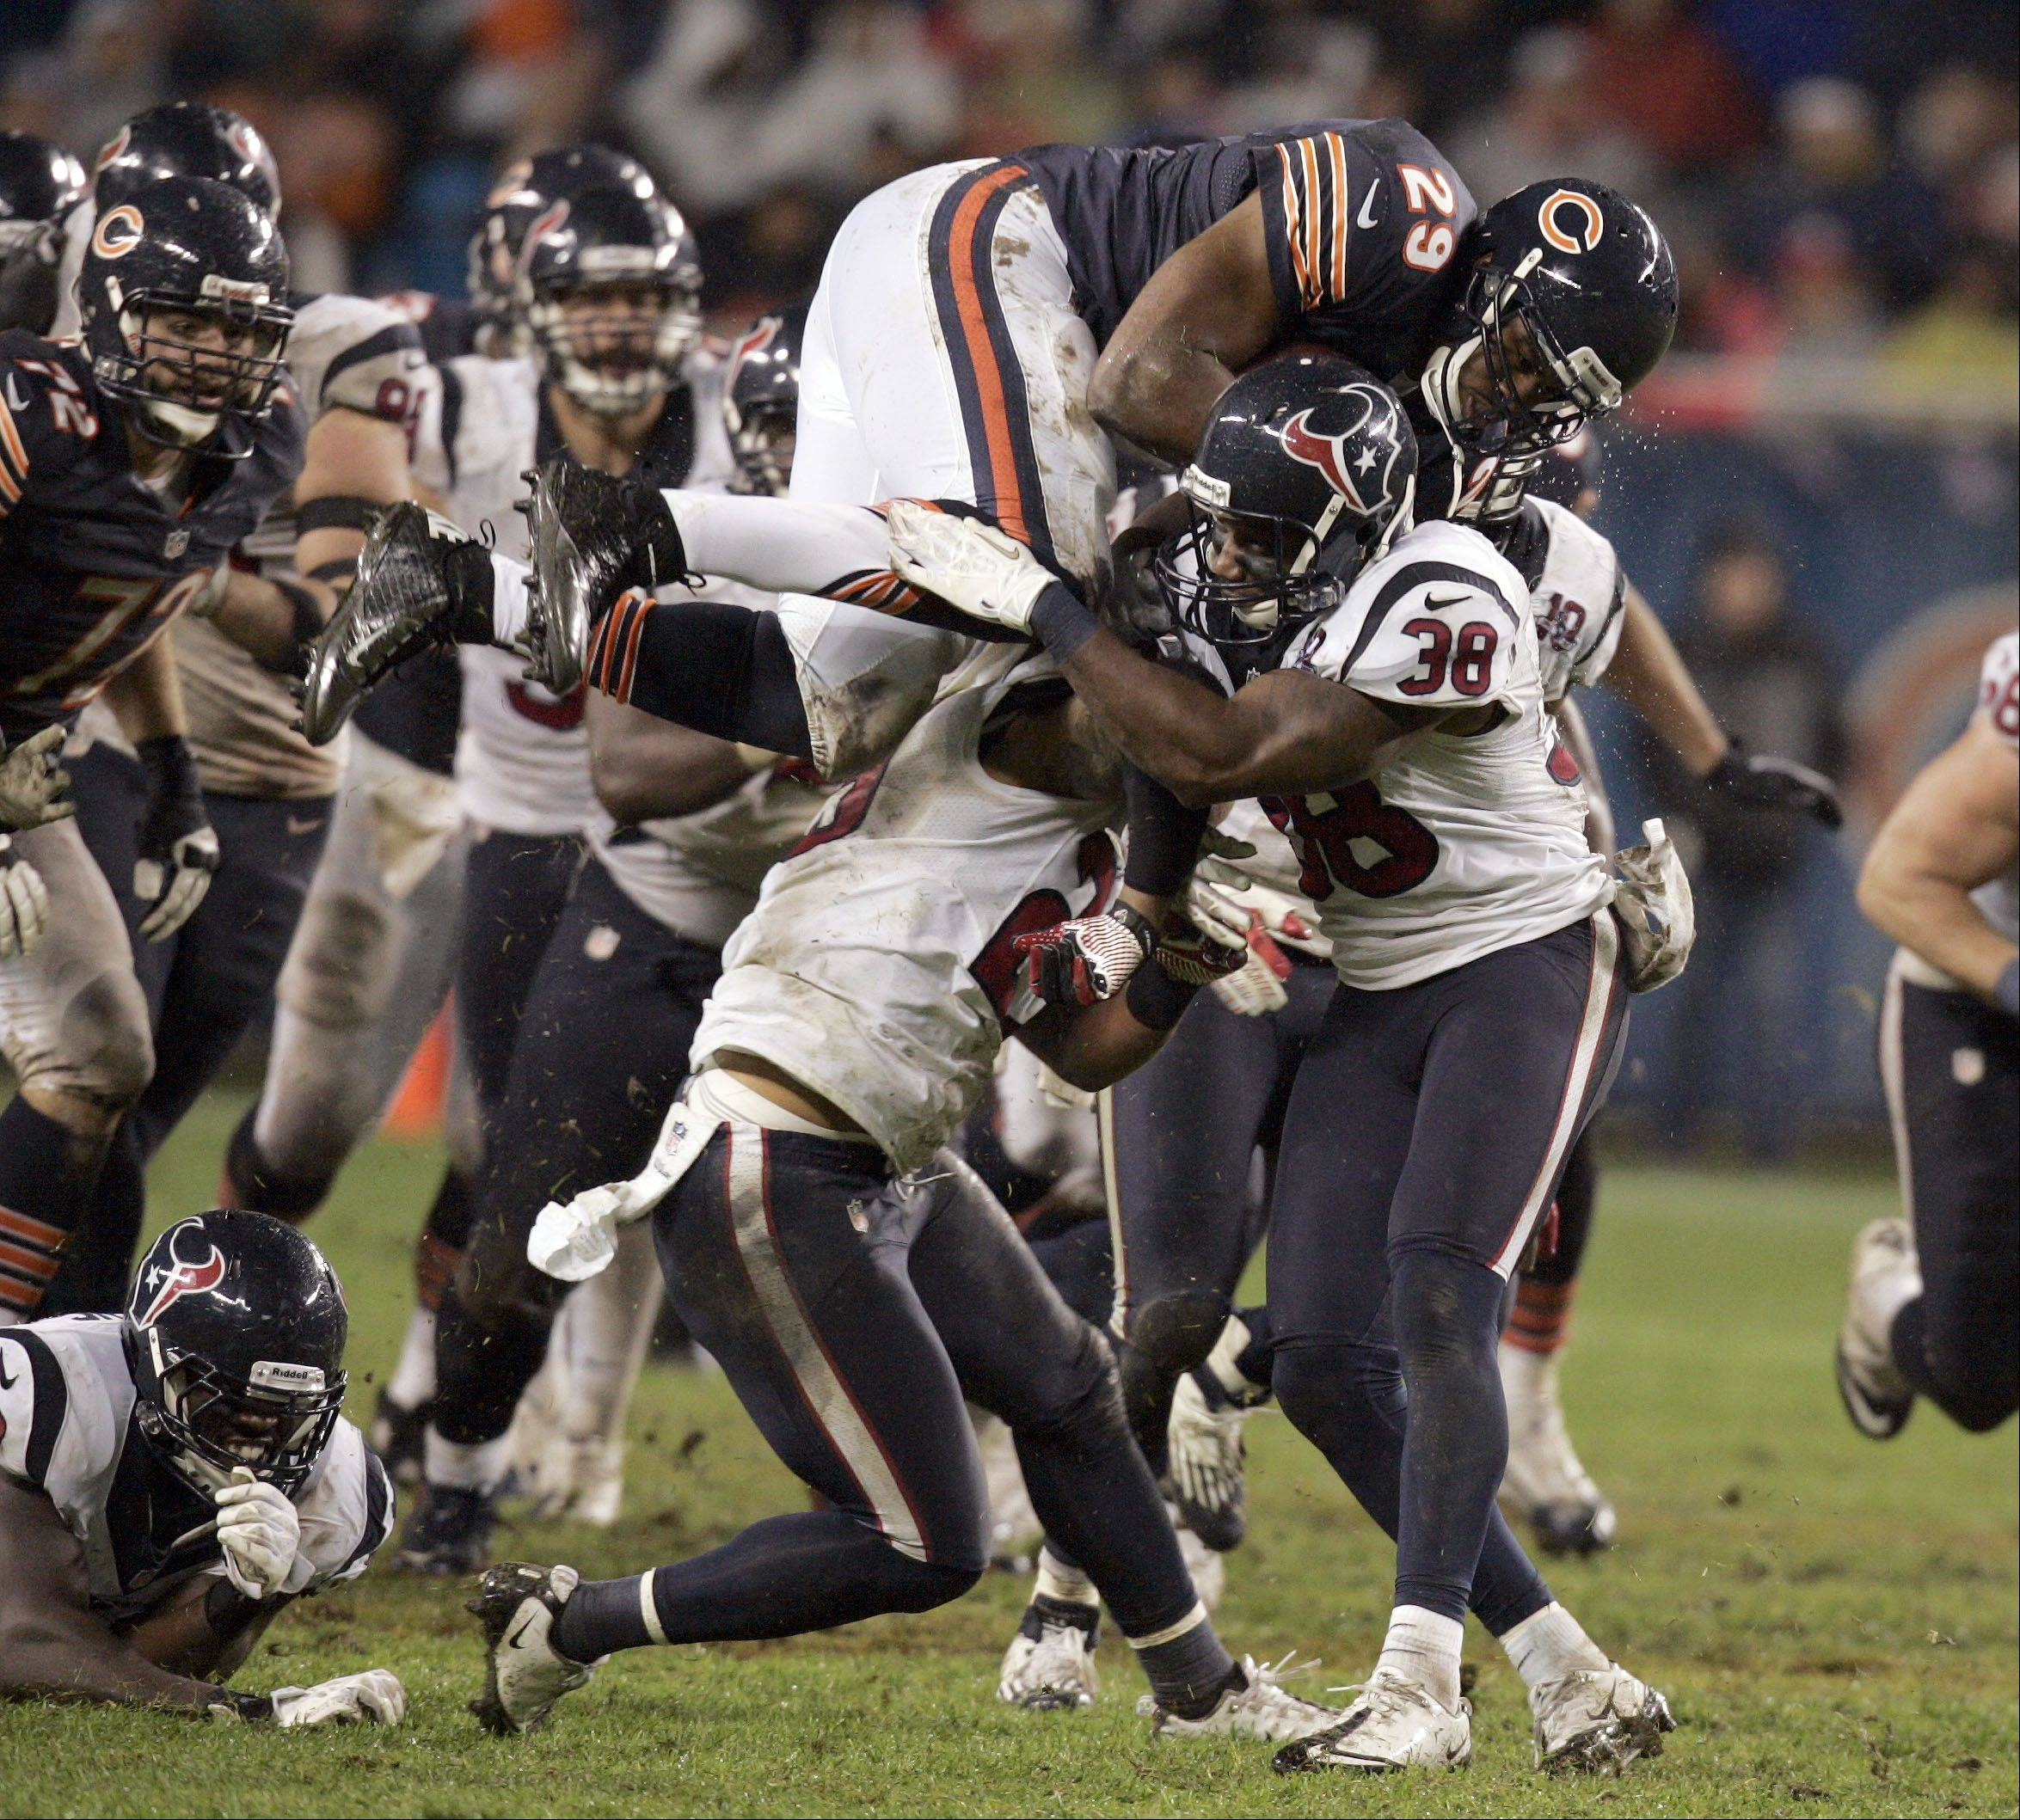 Chicago Bears running back Michael Bush (29) gets up ended by Houston Texans free safety Danieal Manning (38) during the game.